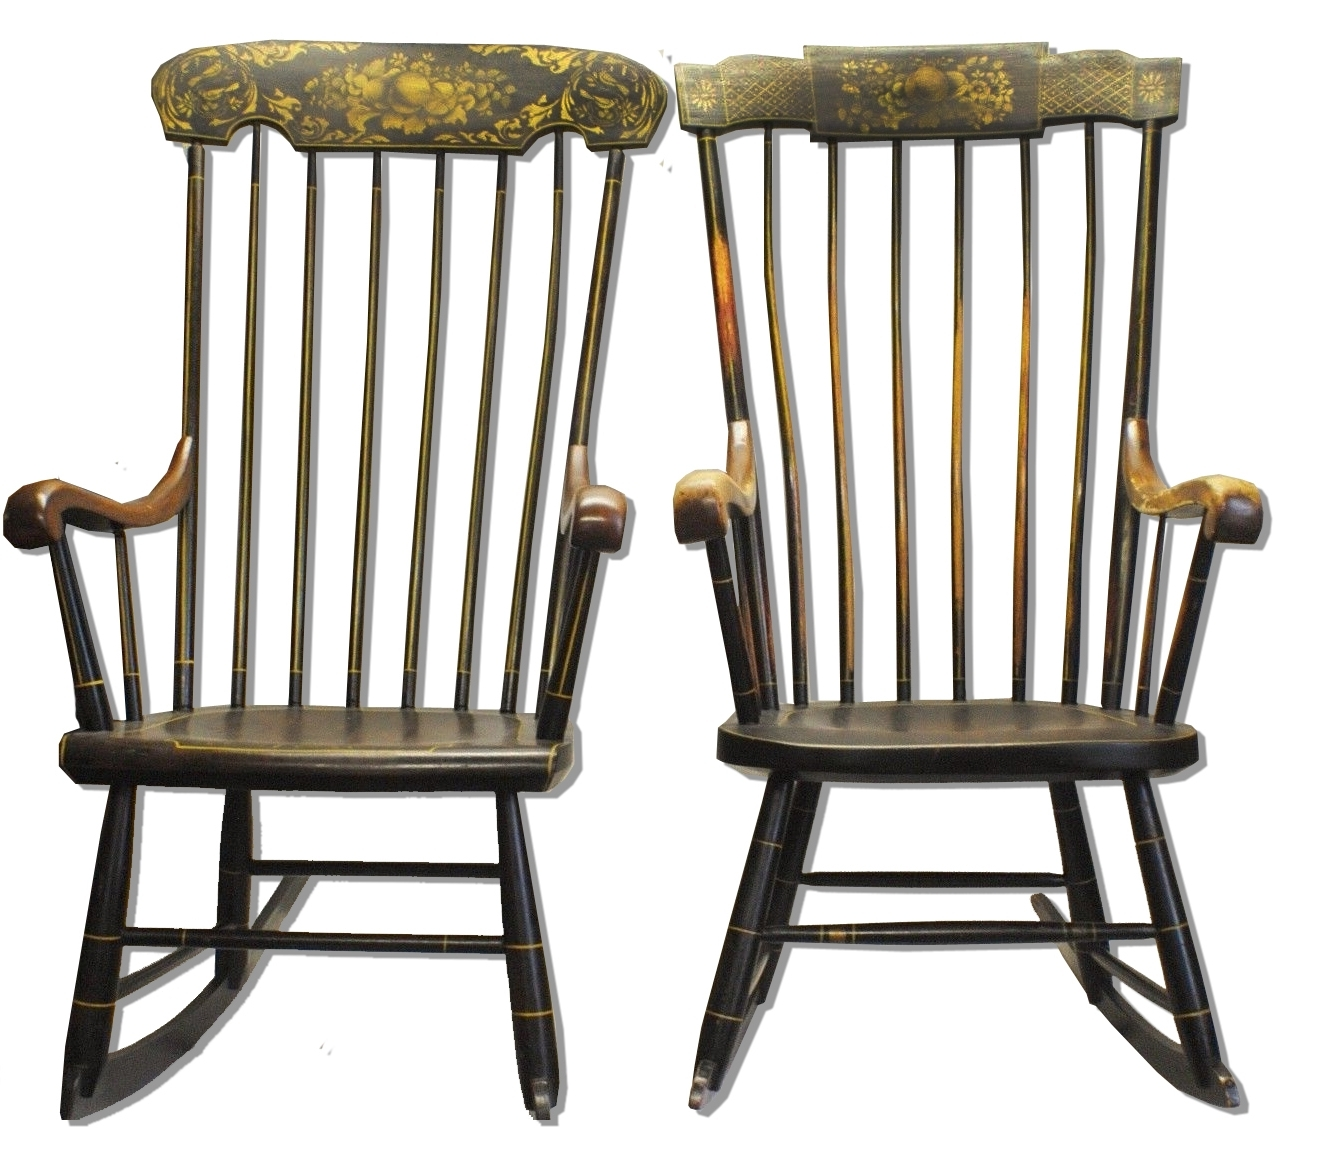 Lincoln's Rocking Chairs Sell For $26K – Antique Trader For Recent Antique Rocking Chairs (View 4 of 15)